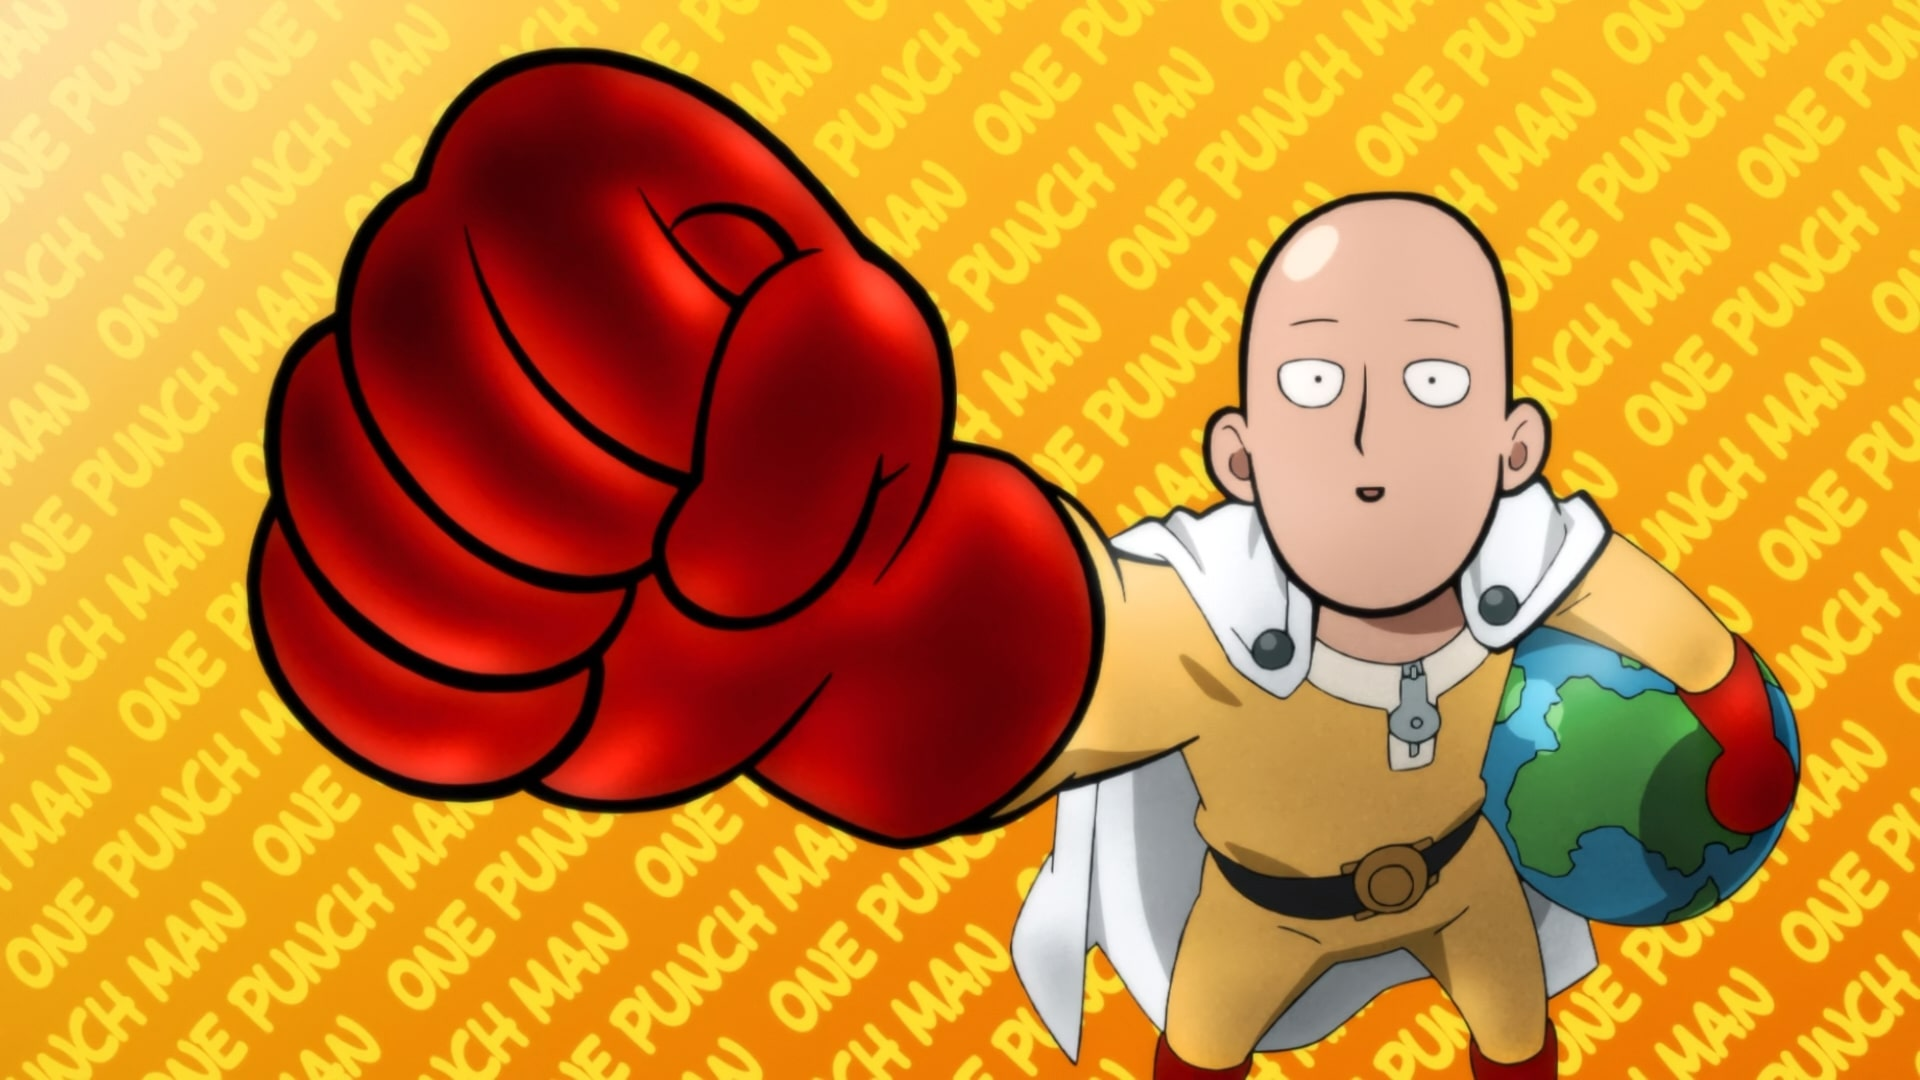 Wallpaper Of Anime One Punch Man Season 2 Saitama Background